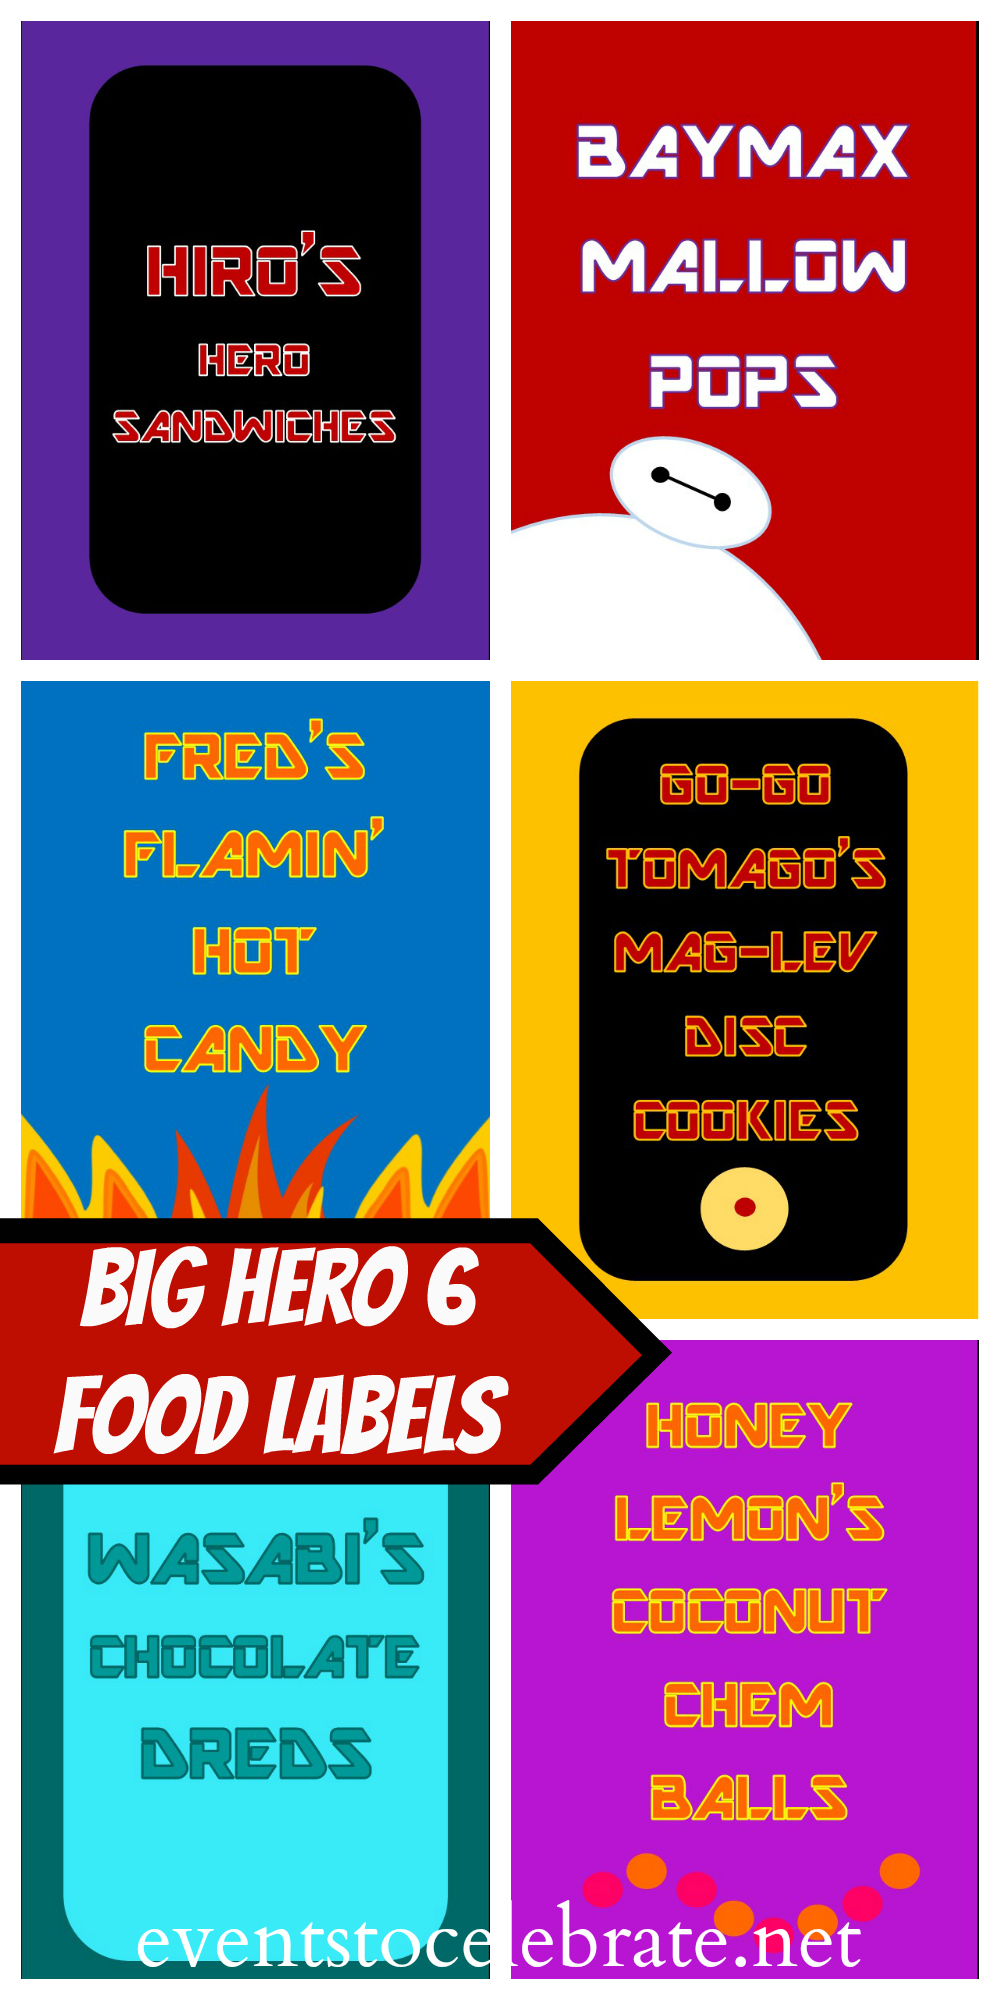 Big Hero 6 Birthday Party - eventstocelebrate.net #BigHero6Release #ad